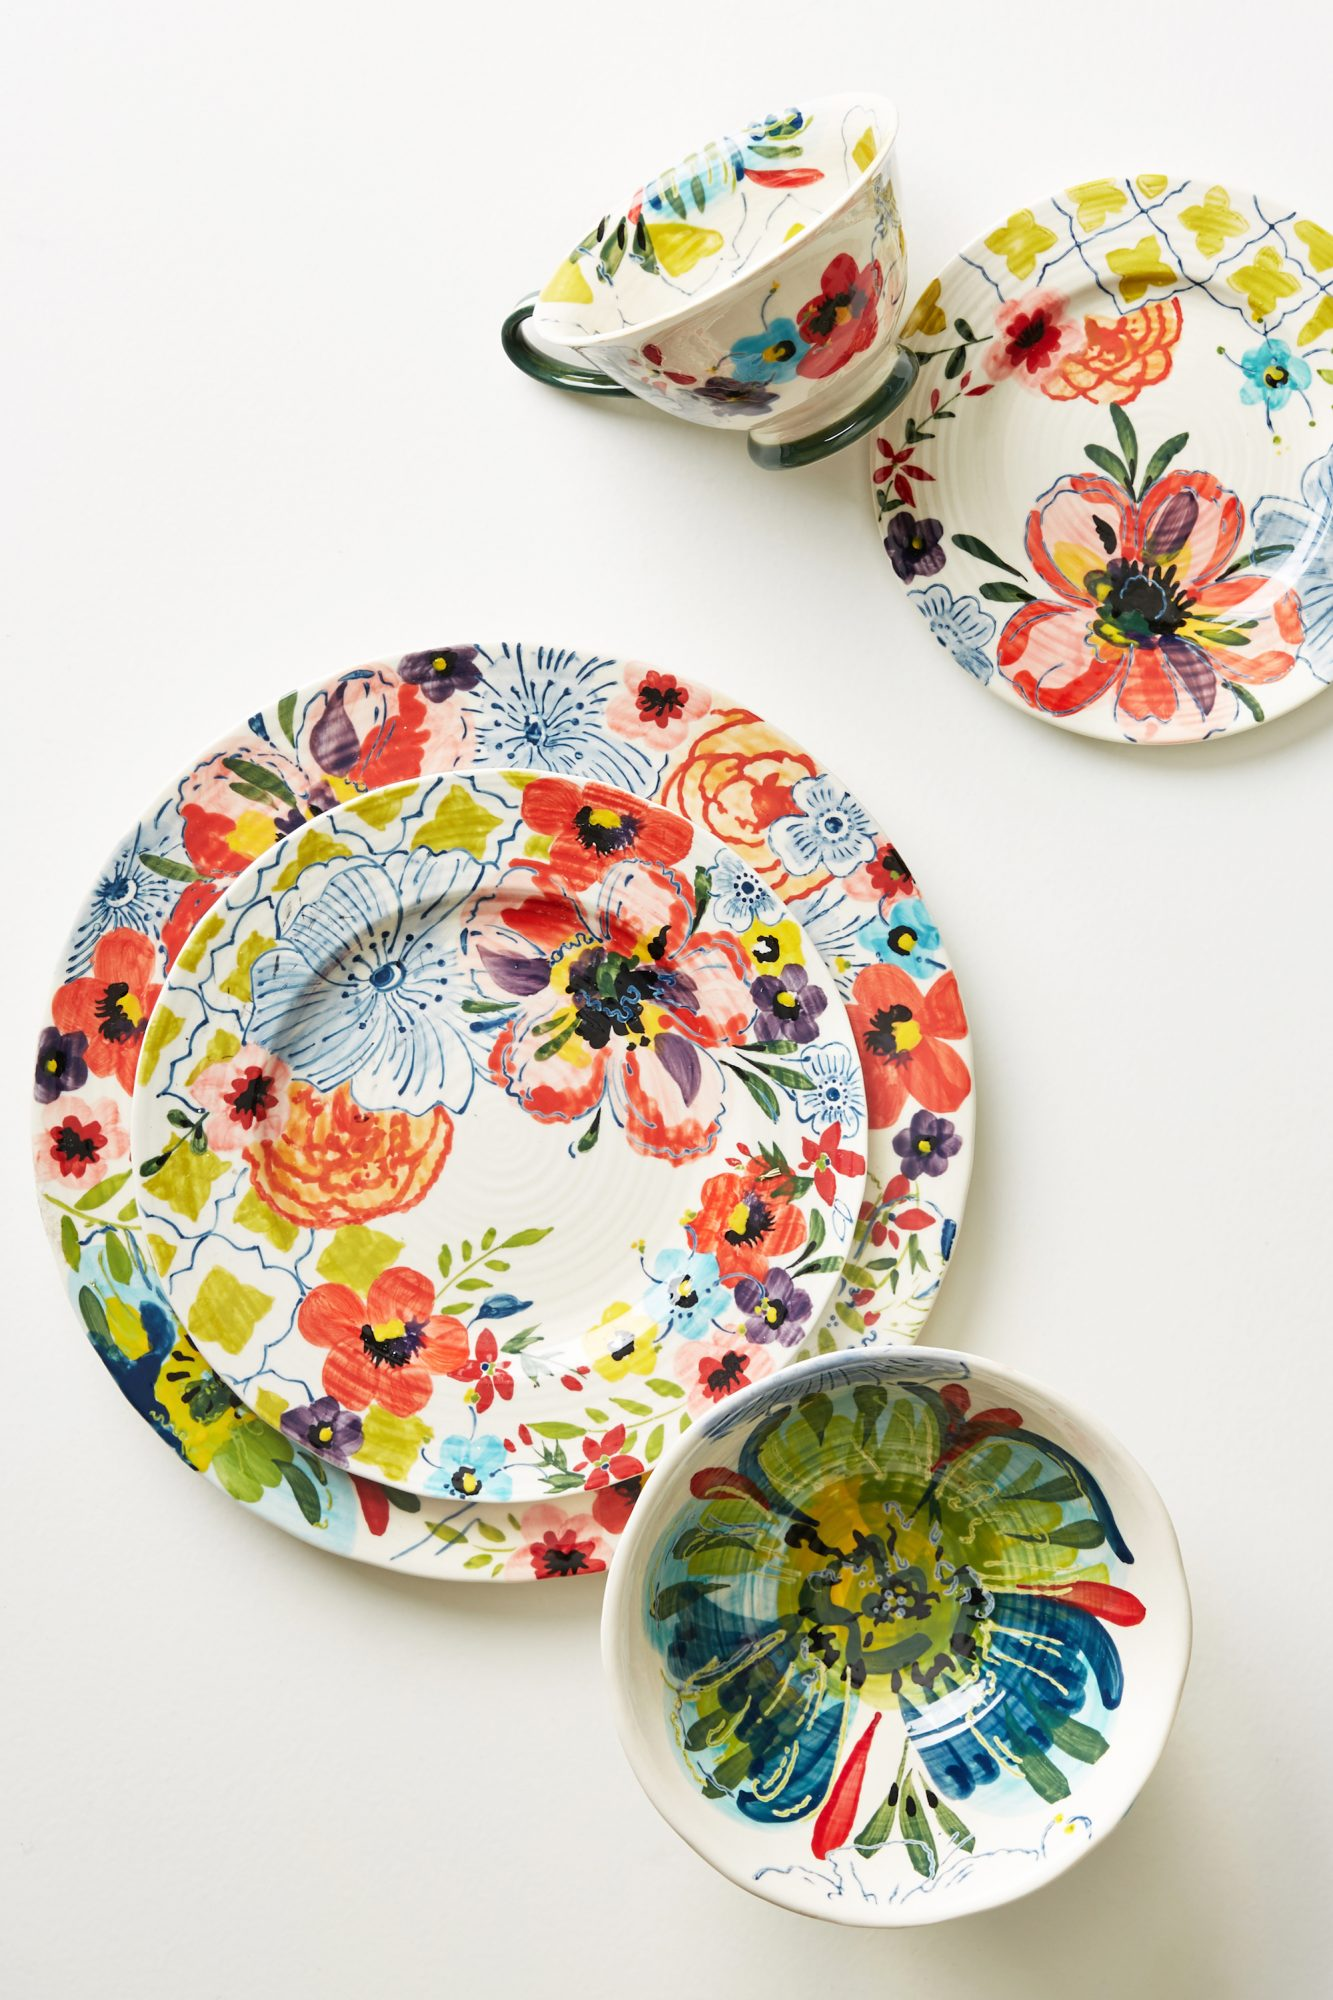 Anthropologie's New Home Collection at Nordstrom Has Gorgeous Finds Under $60